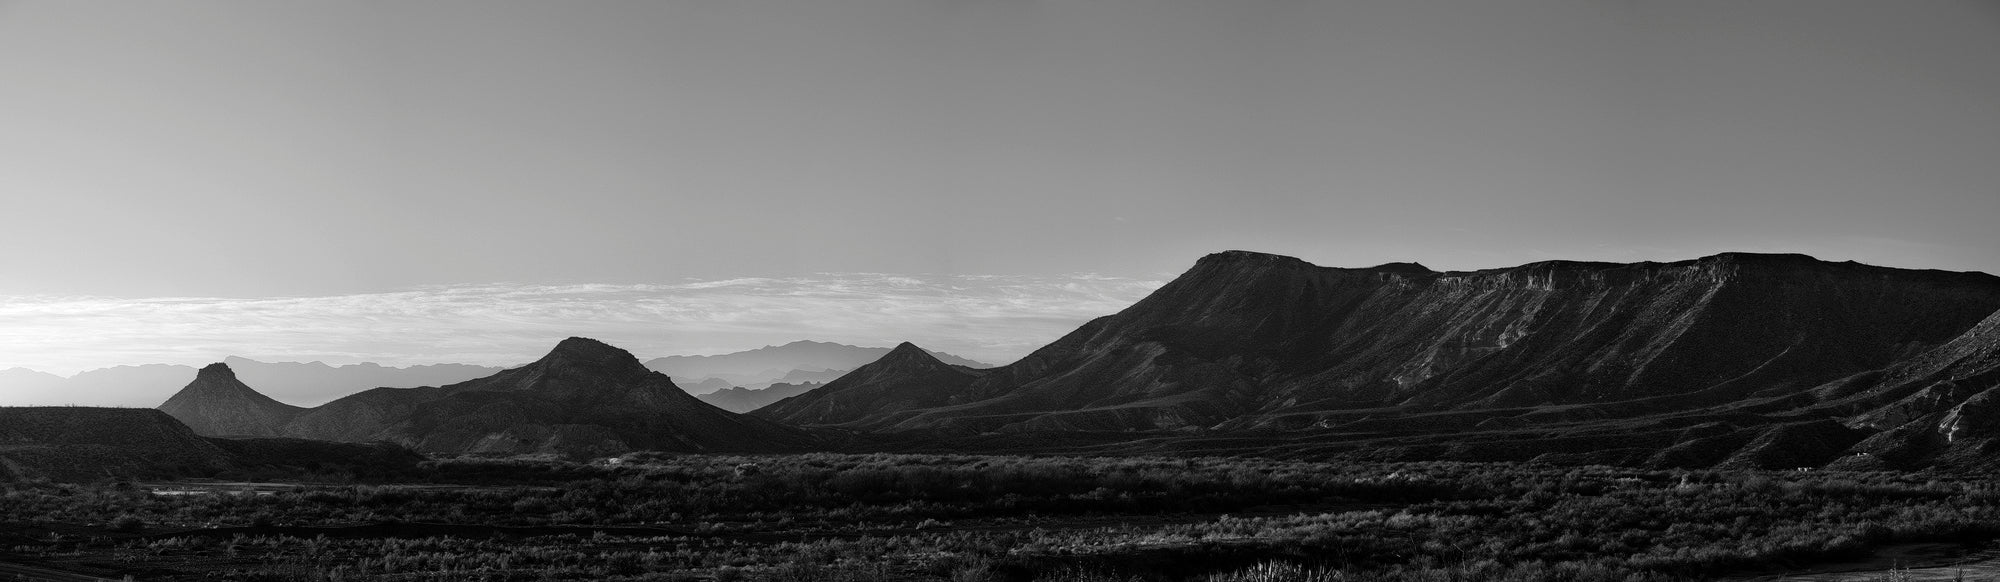 West Texas Mountain Panorama. Black and White Photograph by Keith Dotson. Buy a fine art print.